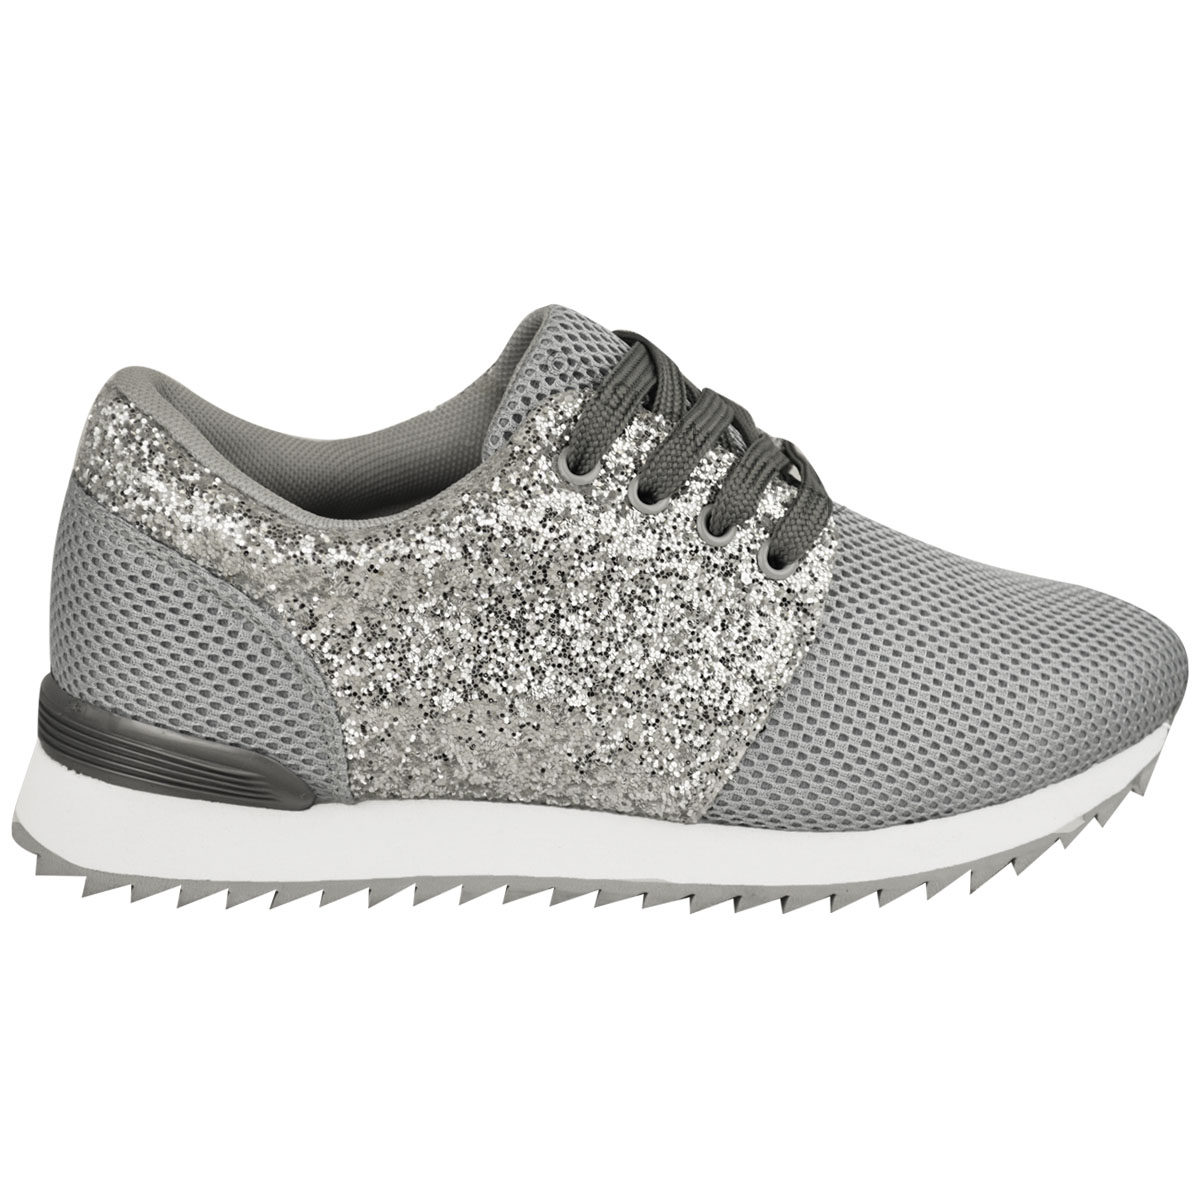 Womens Flat Lace Up Glitter Sparkly Sneakers Trainers Plimsolls Shoes Size. from $ 16 out of 5 stars Asushoes. Womens Forever Link Remy Lace up Glitter Fashion Sneaker w Elastic Tongue & White Outsole. from $ 13 out of 5 stars Mila Lady.